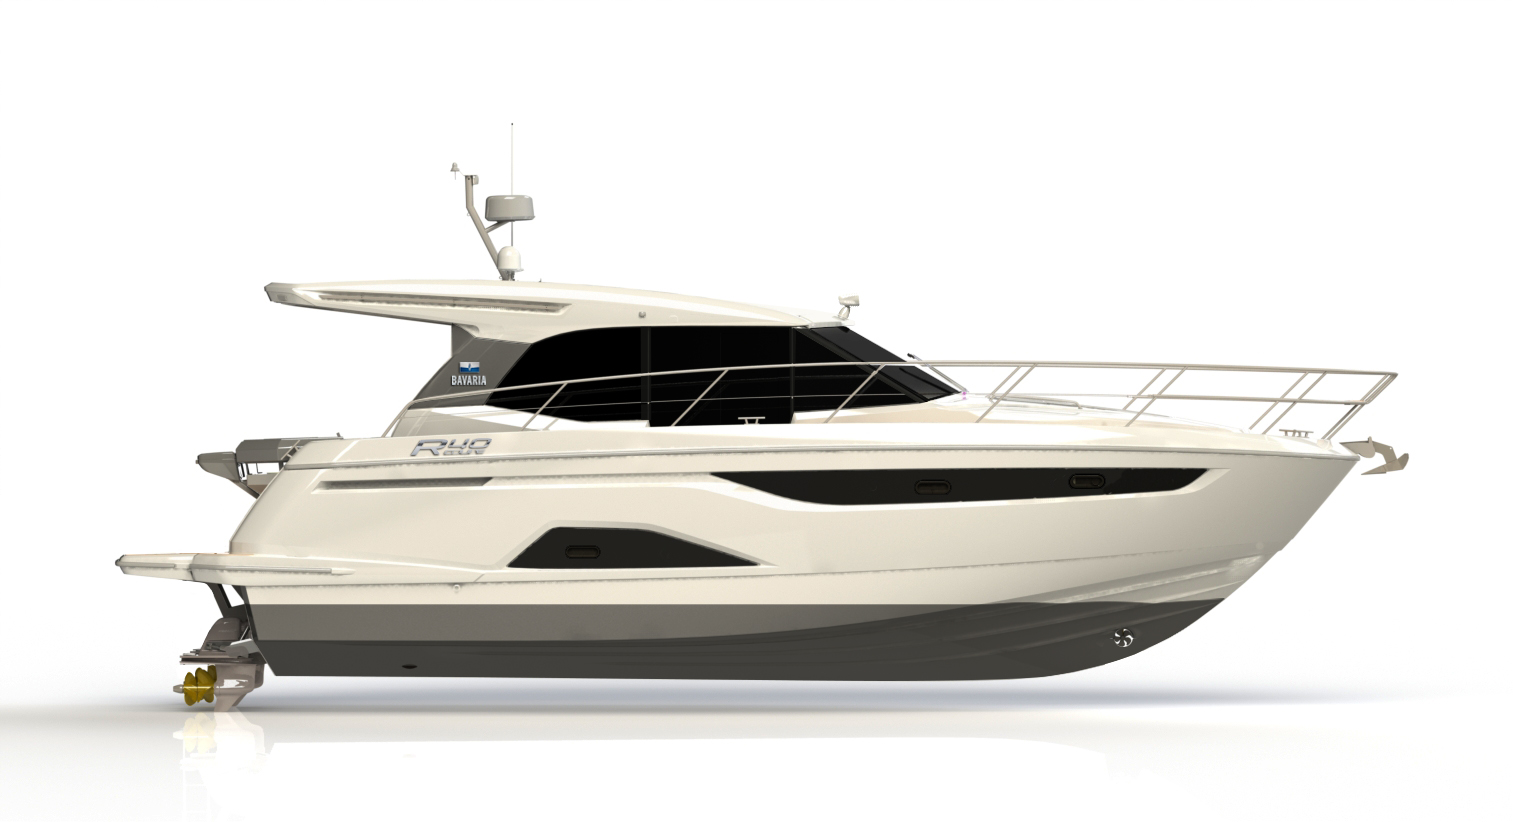 The Coupe joins the Flybridge model as the second R40 from Bavaria.